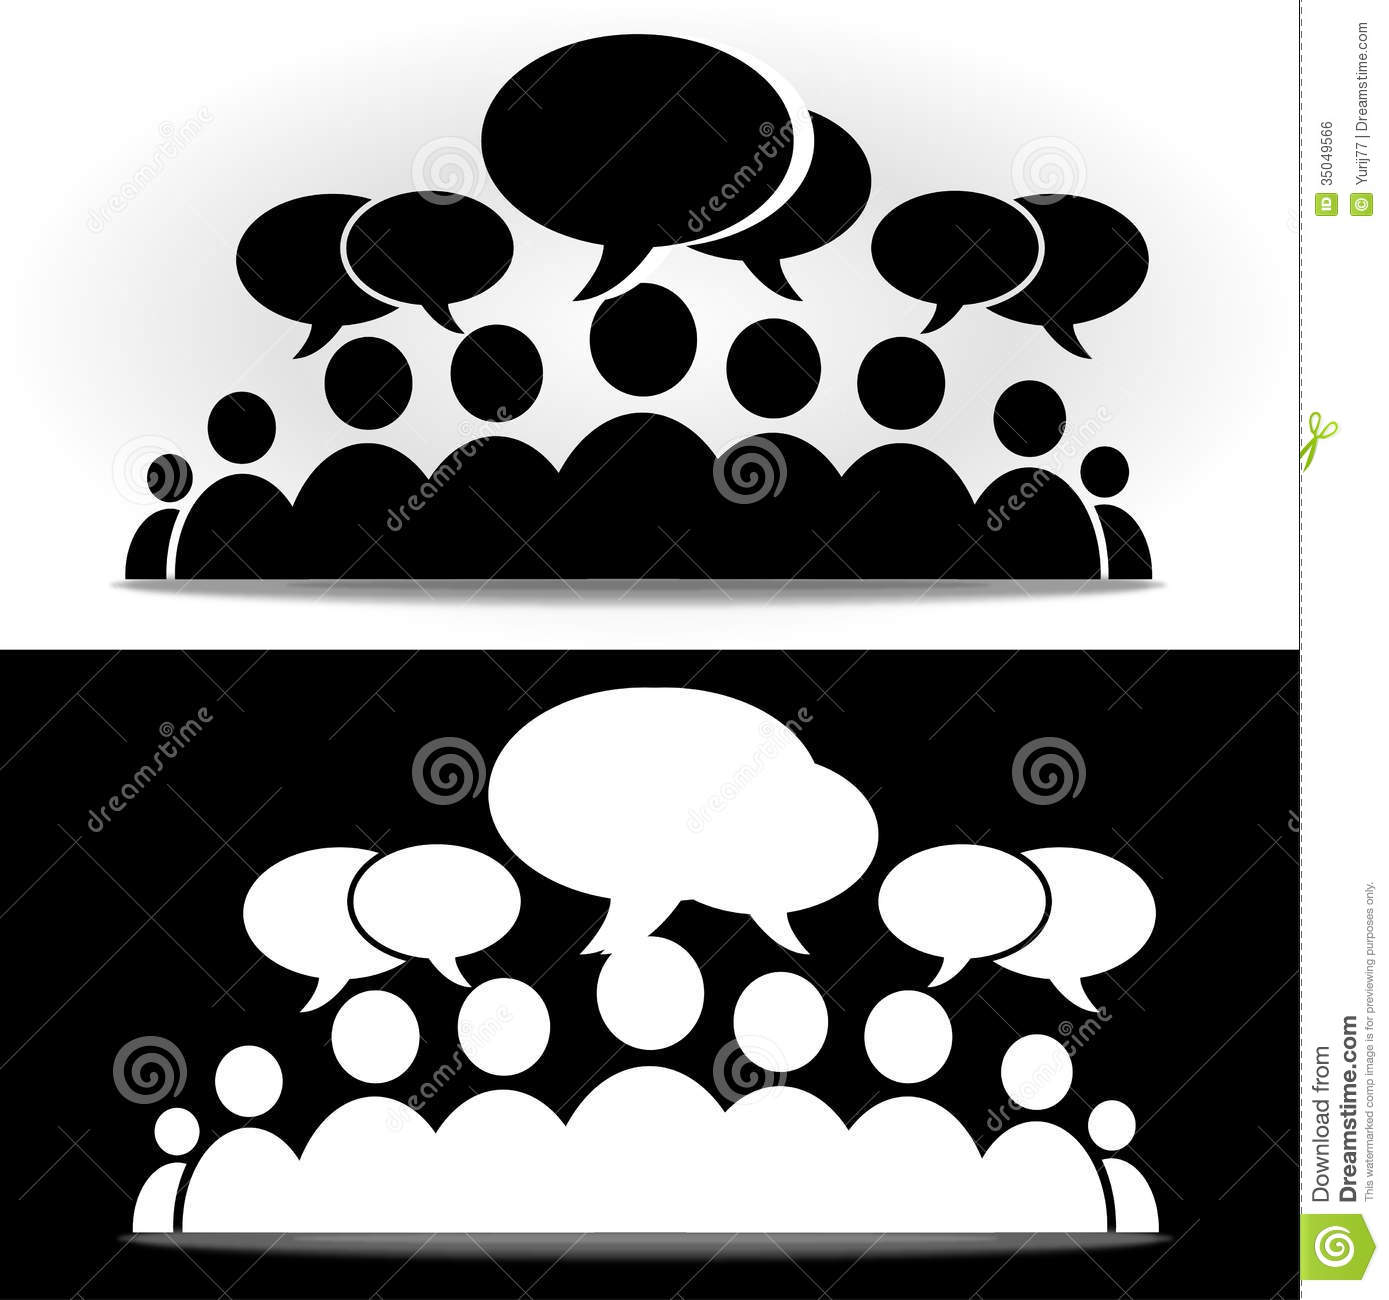 Black And White Social Community Forum Royalty Free Stock Image  Image 35049566